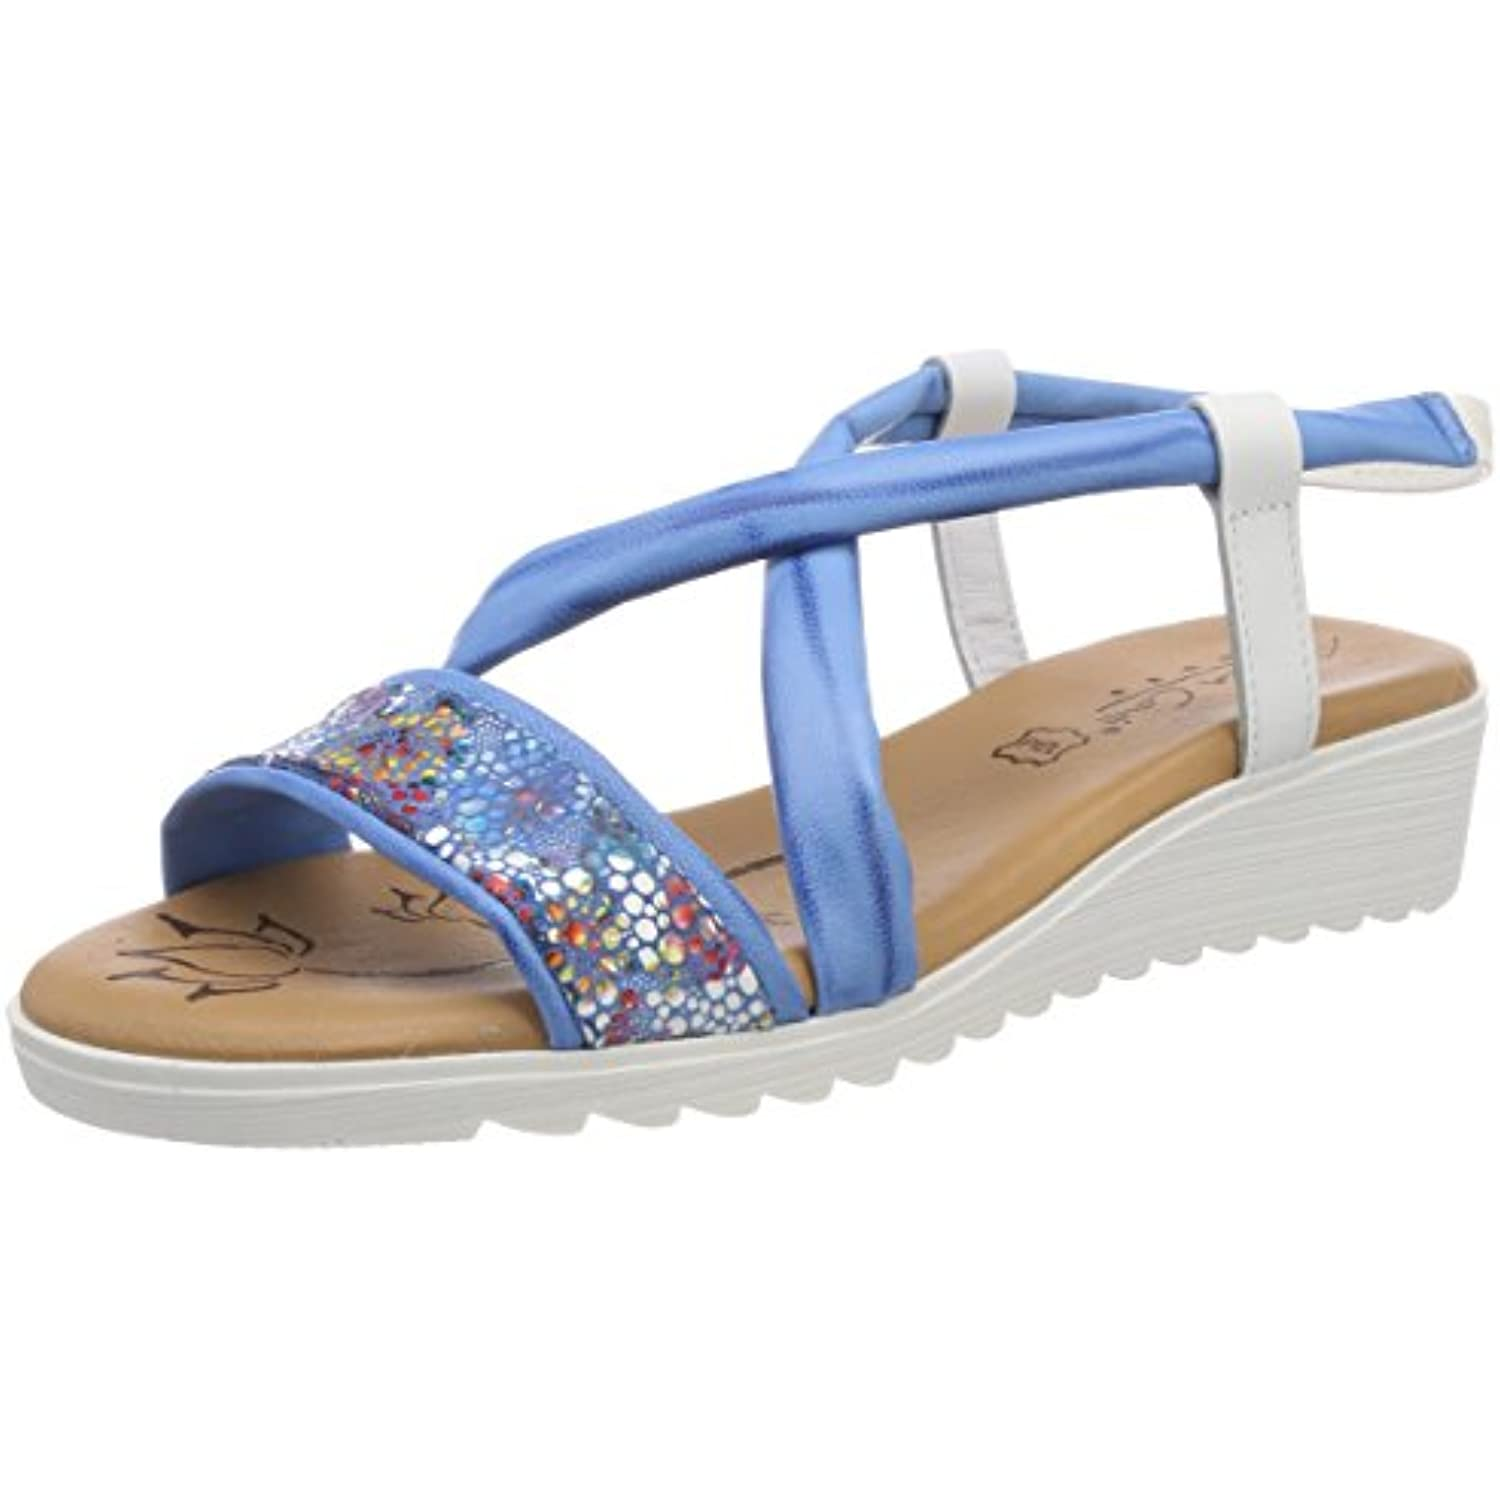 Andrea Conti 0145708, - Bout Ouvert Femme - B074RKSYW5 - 0145708, 76a81d